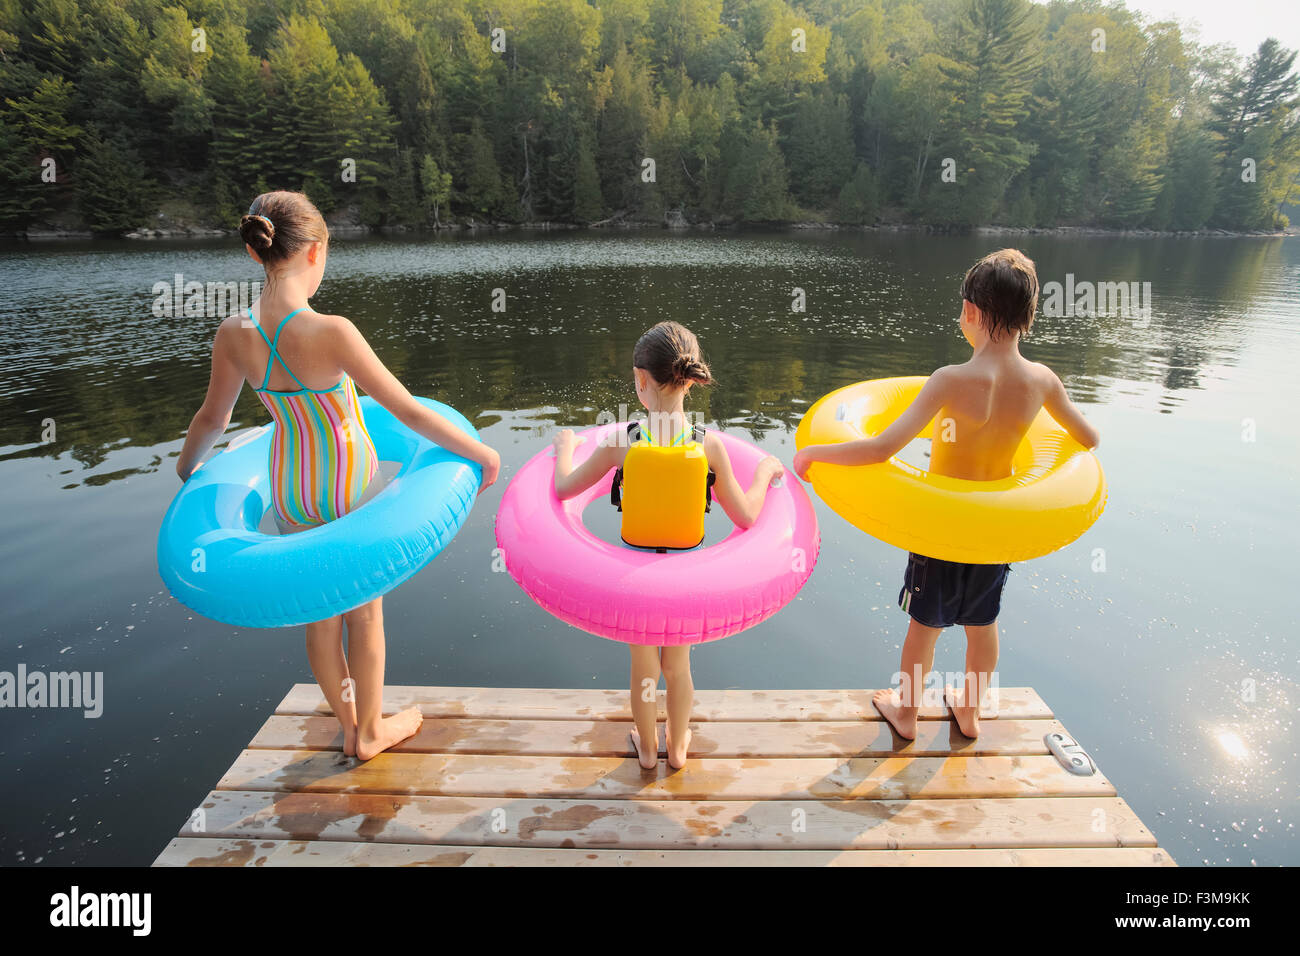 Inflatable,Lake,Jetty,Rubber Ring,Girl,Boy Stock Photo